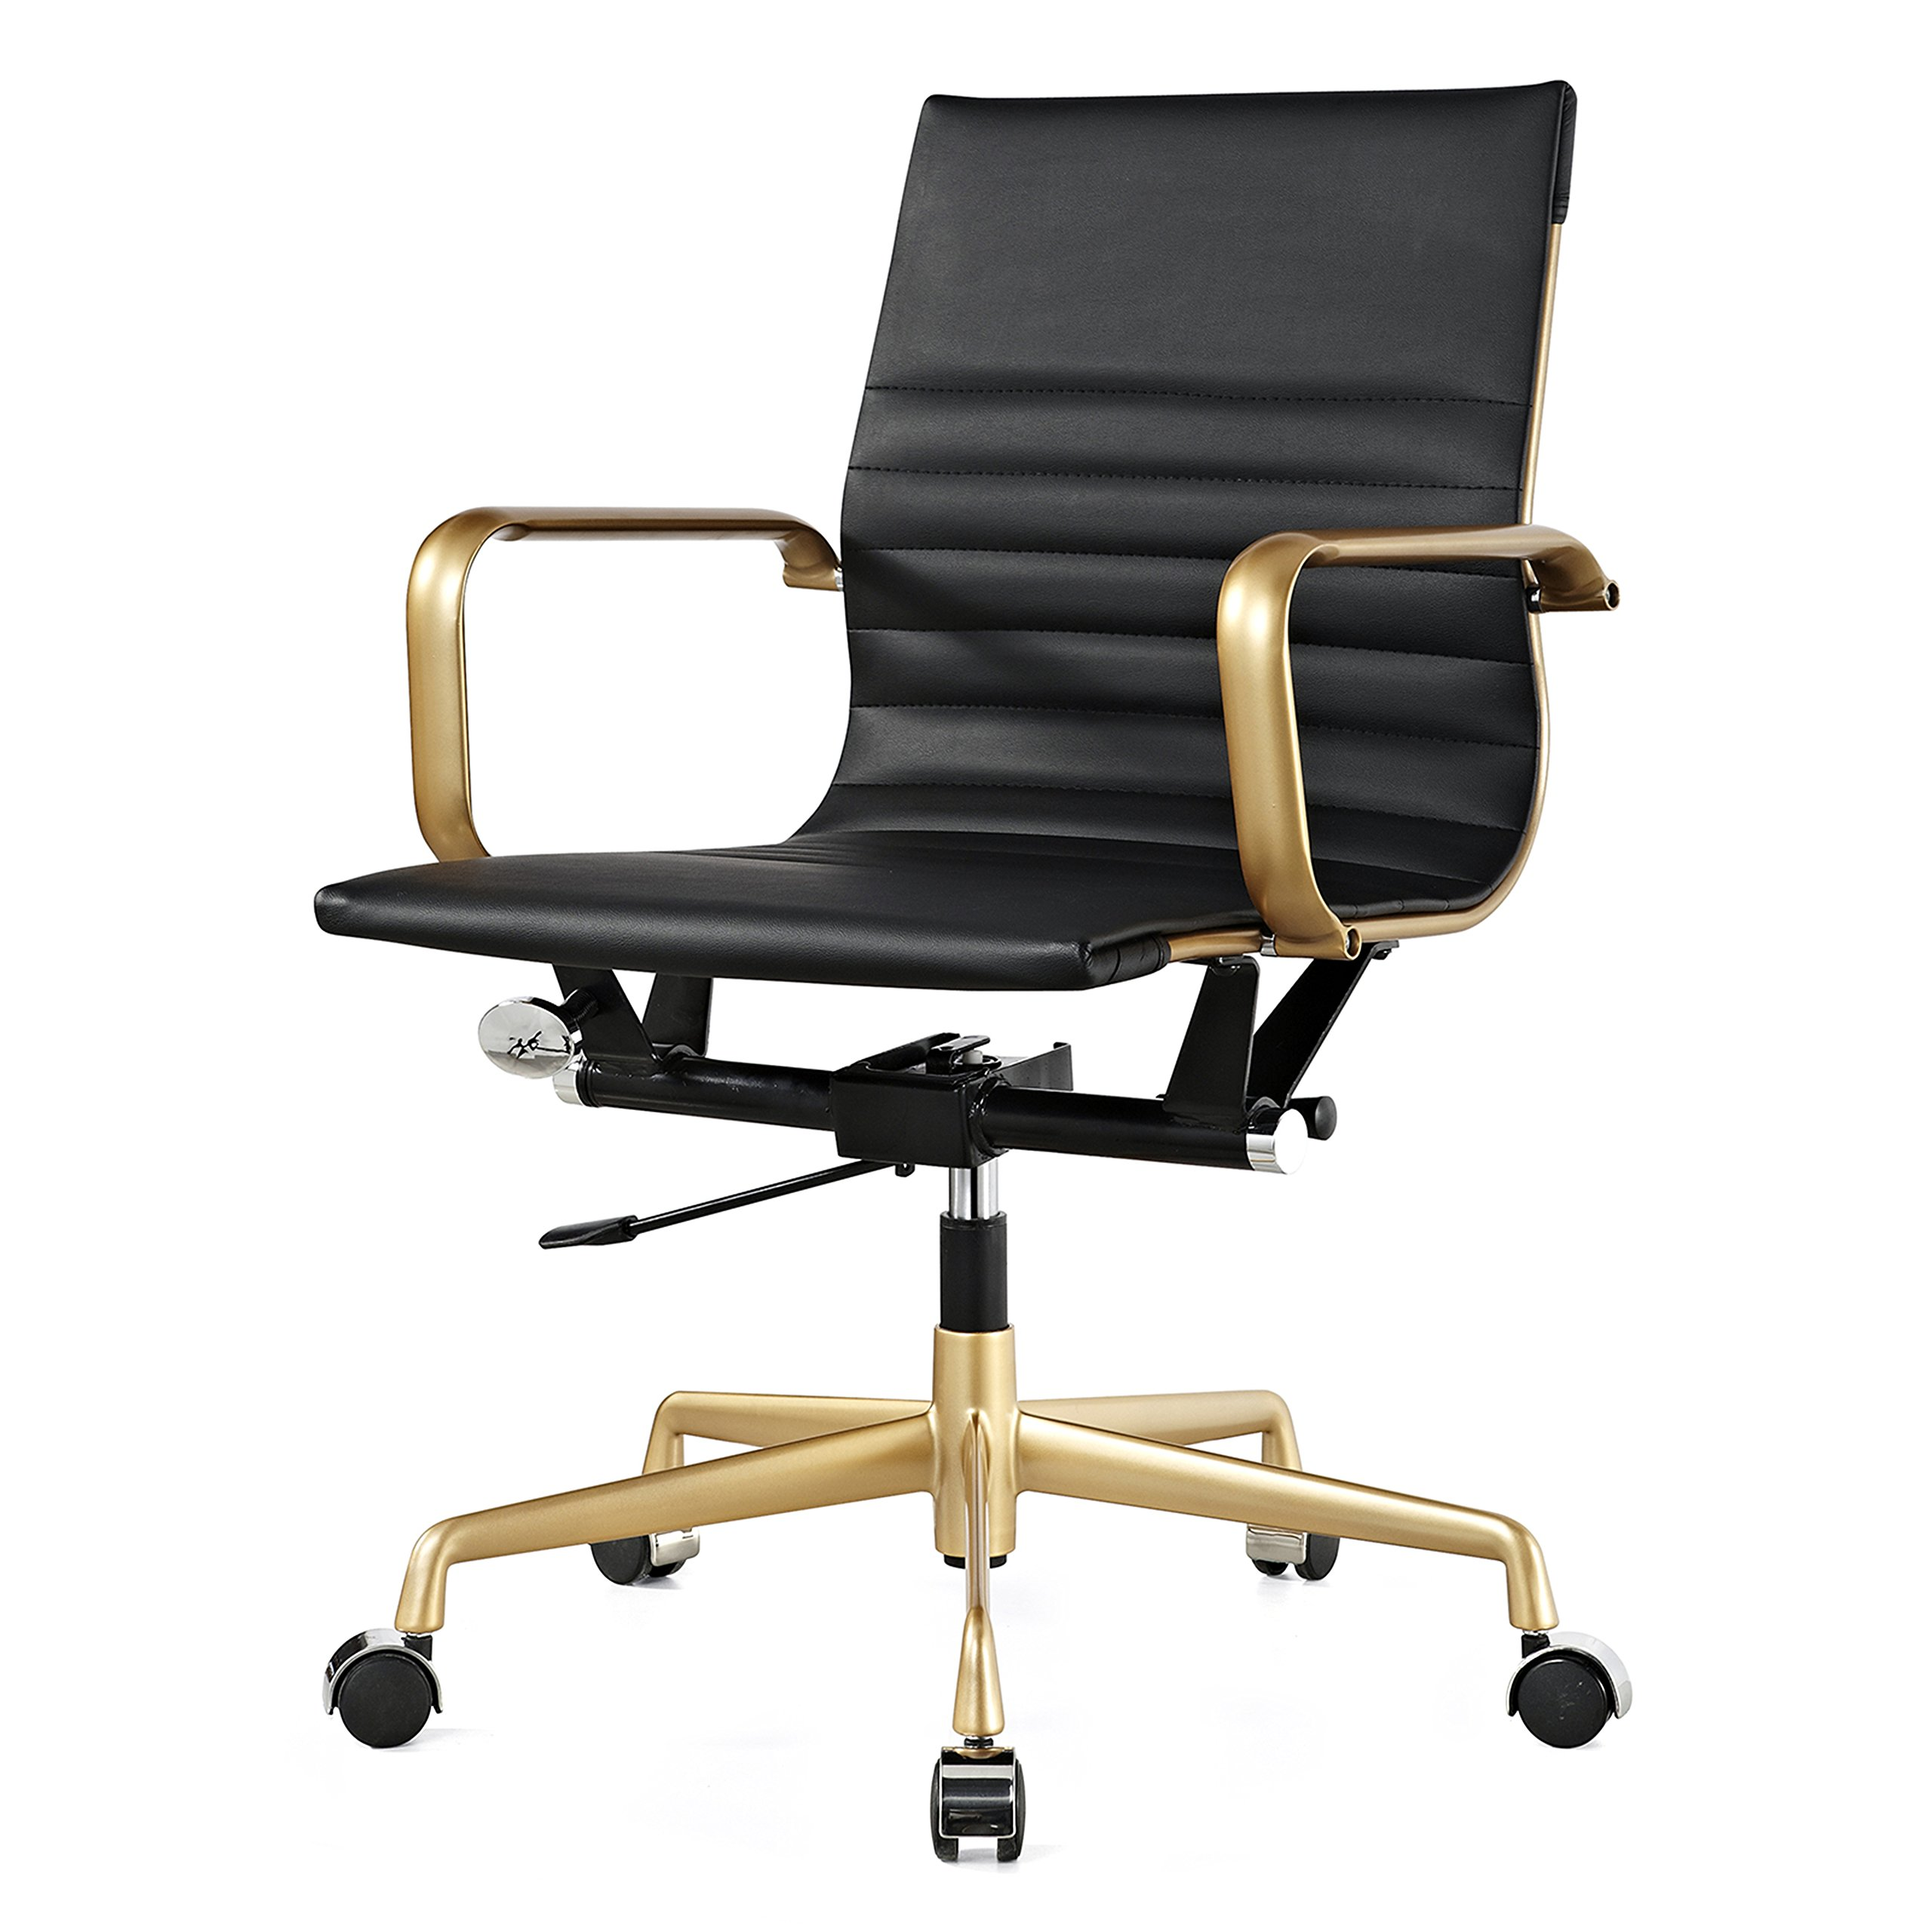 Meelano M348 Ergonomic & Stylish Executive Office Chair,Vegan Leather Desk Chair, Modern Design, Adjustable Height, Reclining Office Seat For Extra Comfort & Style –10 Colors (Gold And Black)